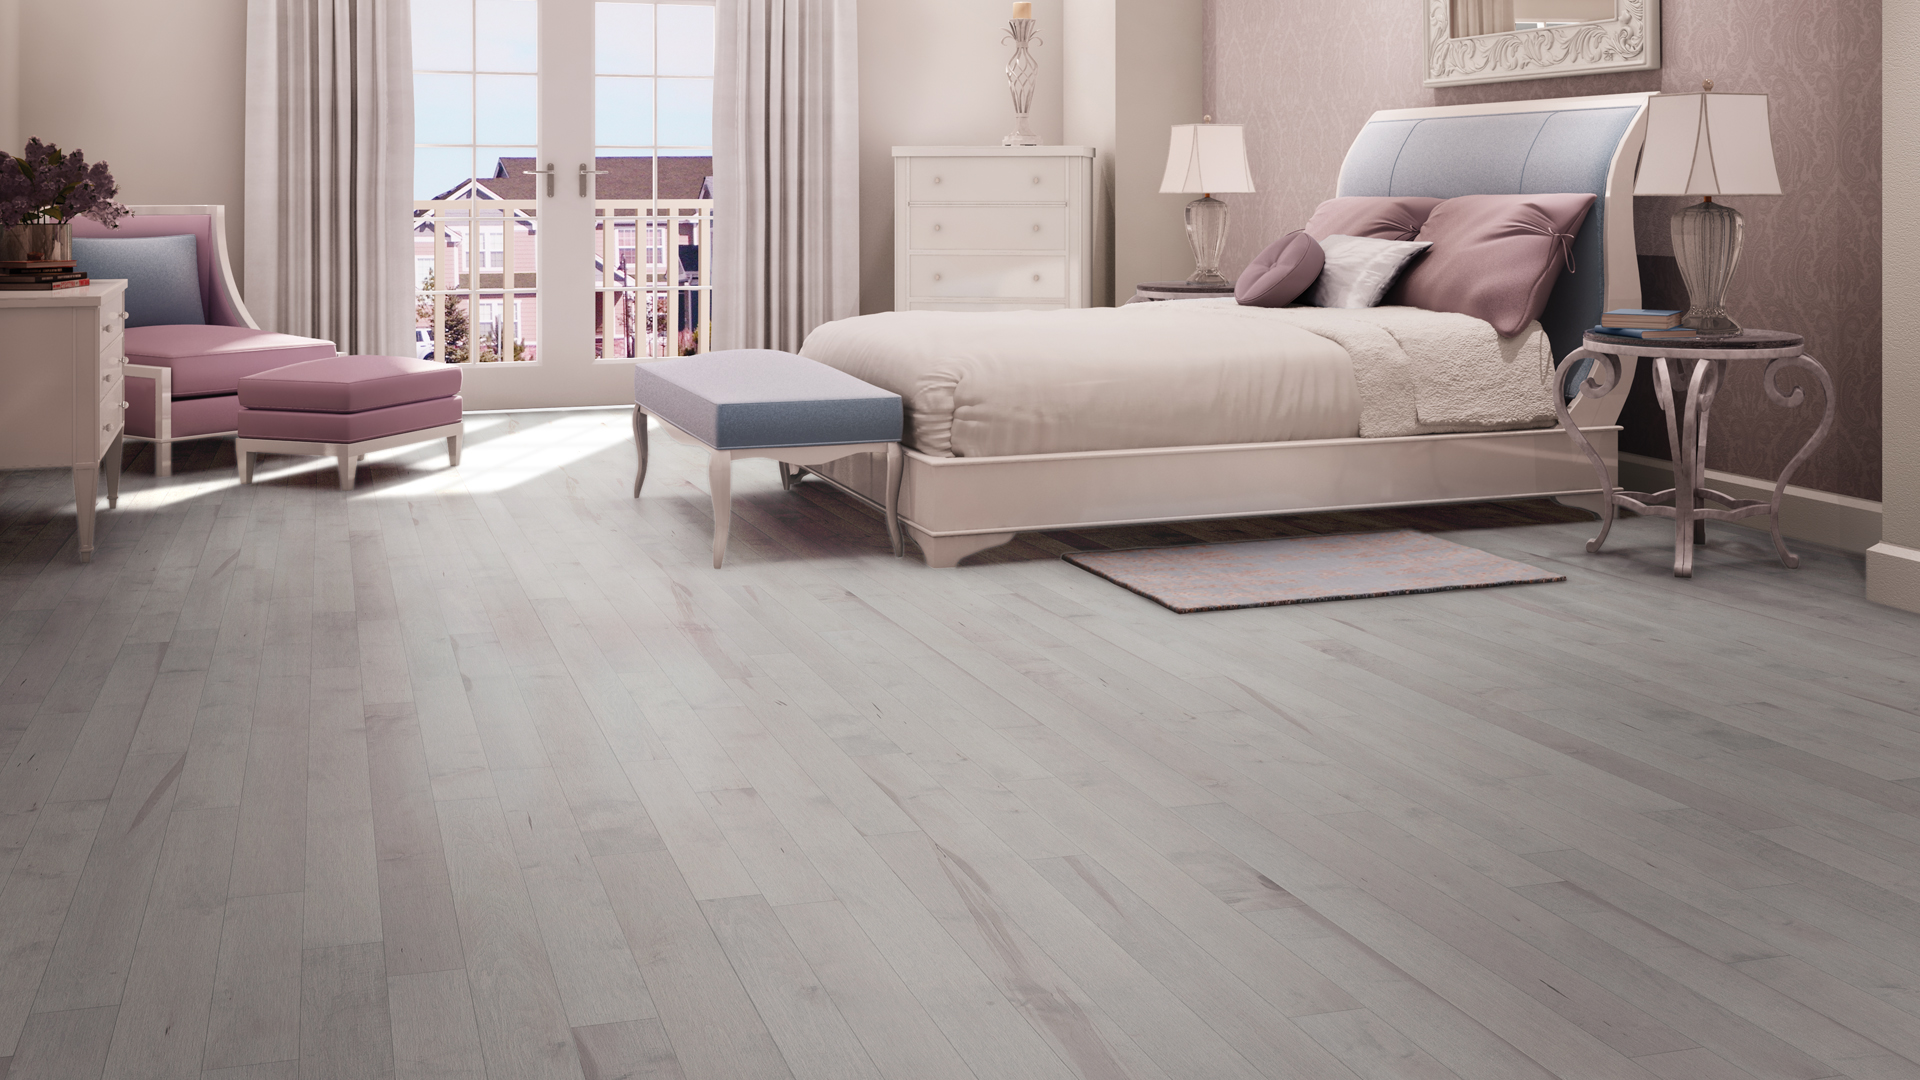 Hard maple nickel | Dubeau hardwood floors | Bedroom decor